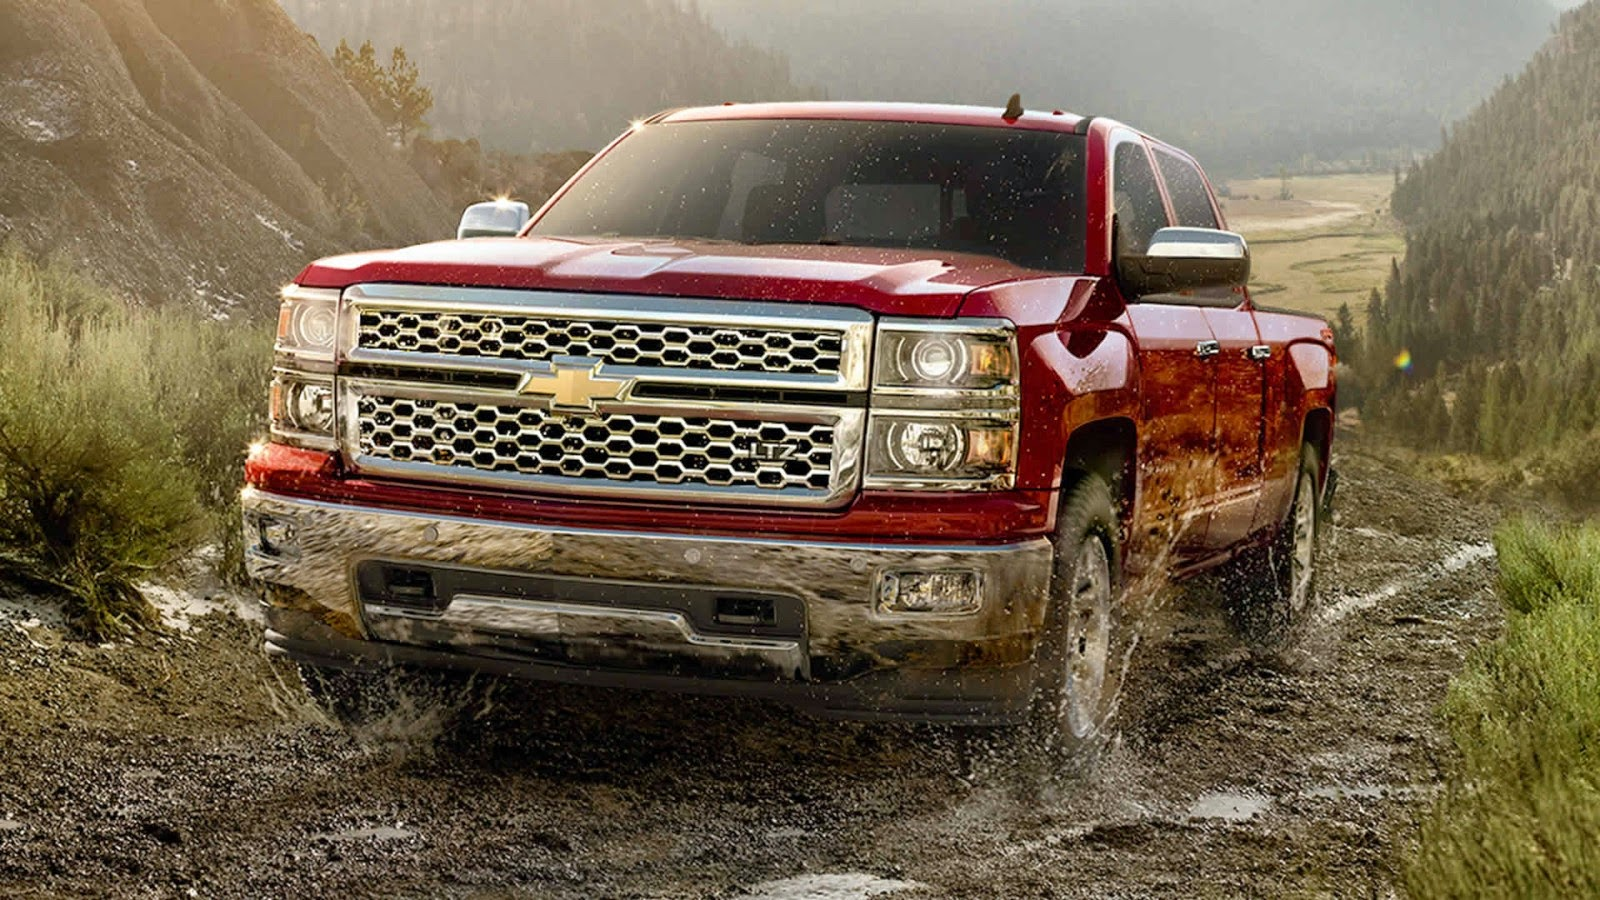 Chevrolet Colorado Pictures Wallpaper Used Silverado Crew